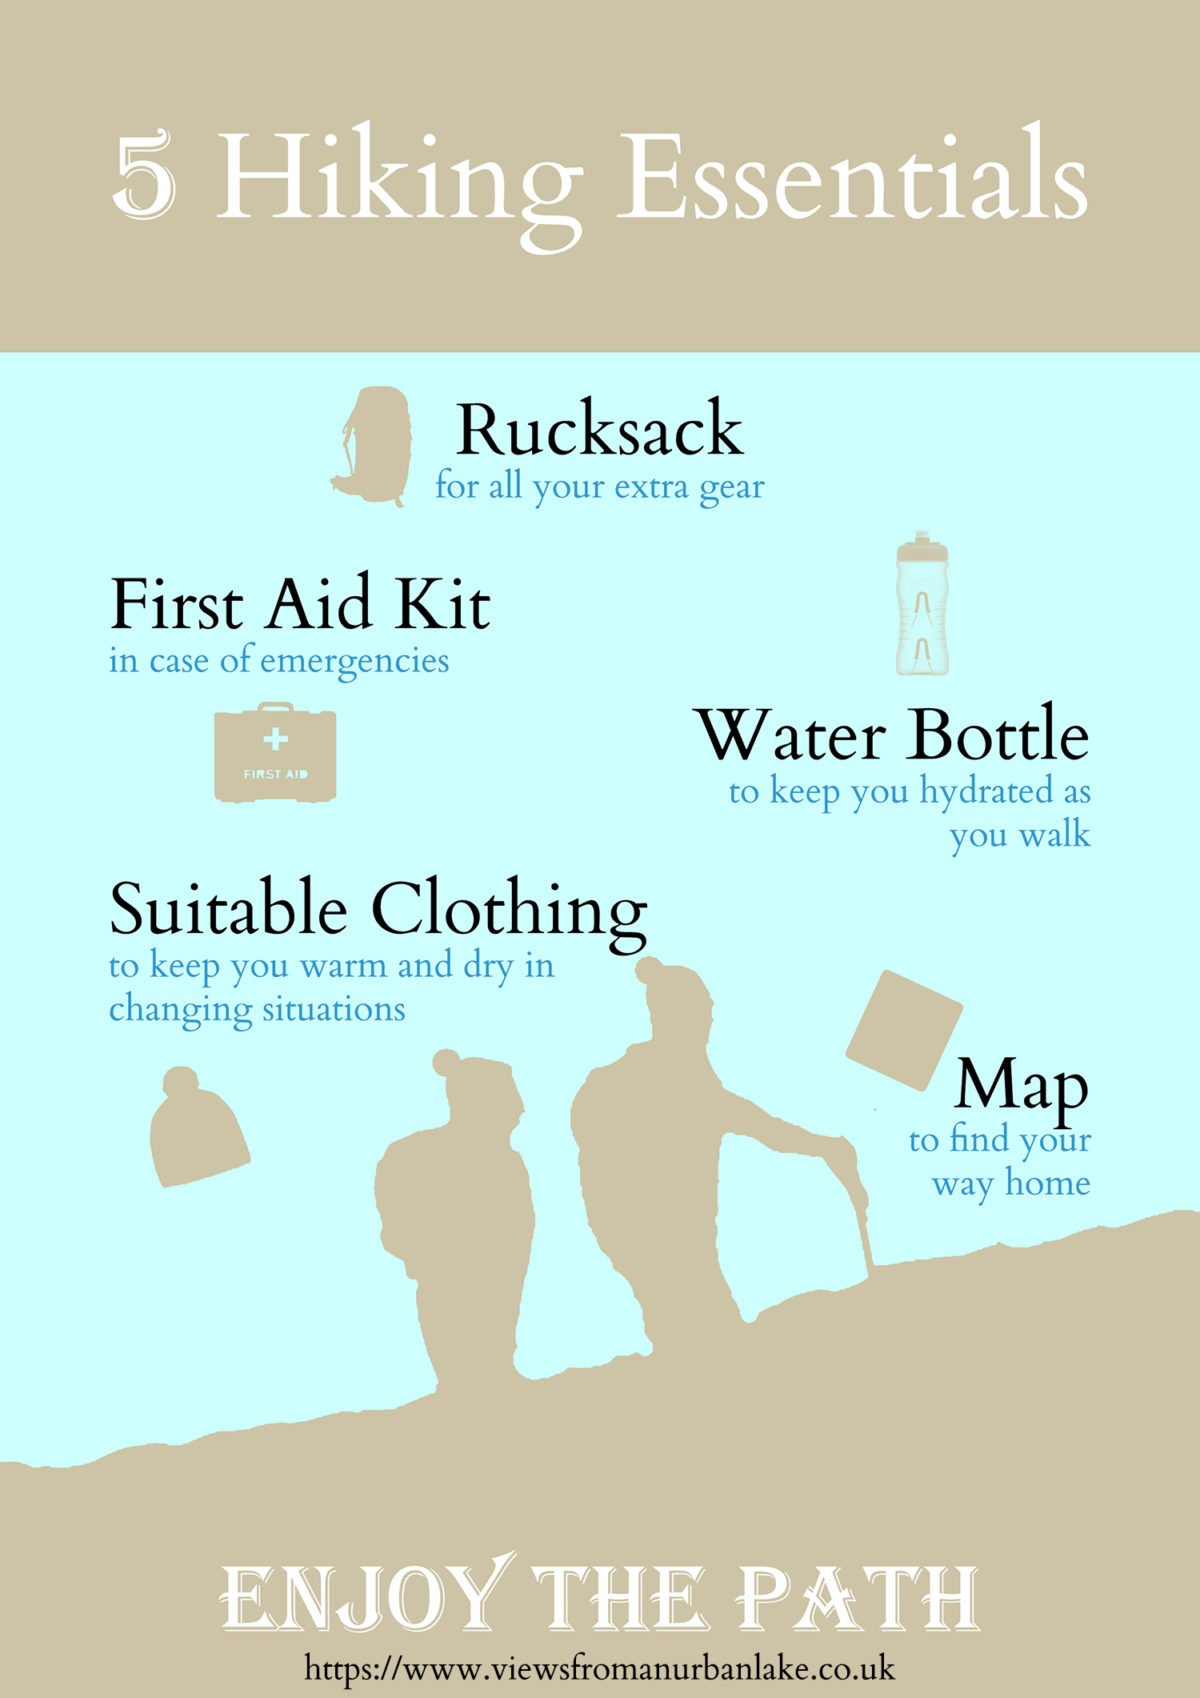 5 Hiking Essentials infographic - Our guide to the 5 essential items we always take hiking with us.